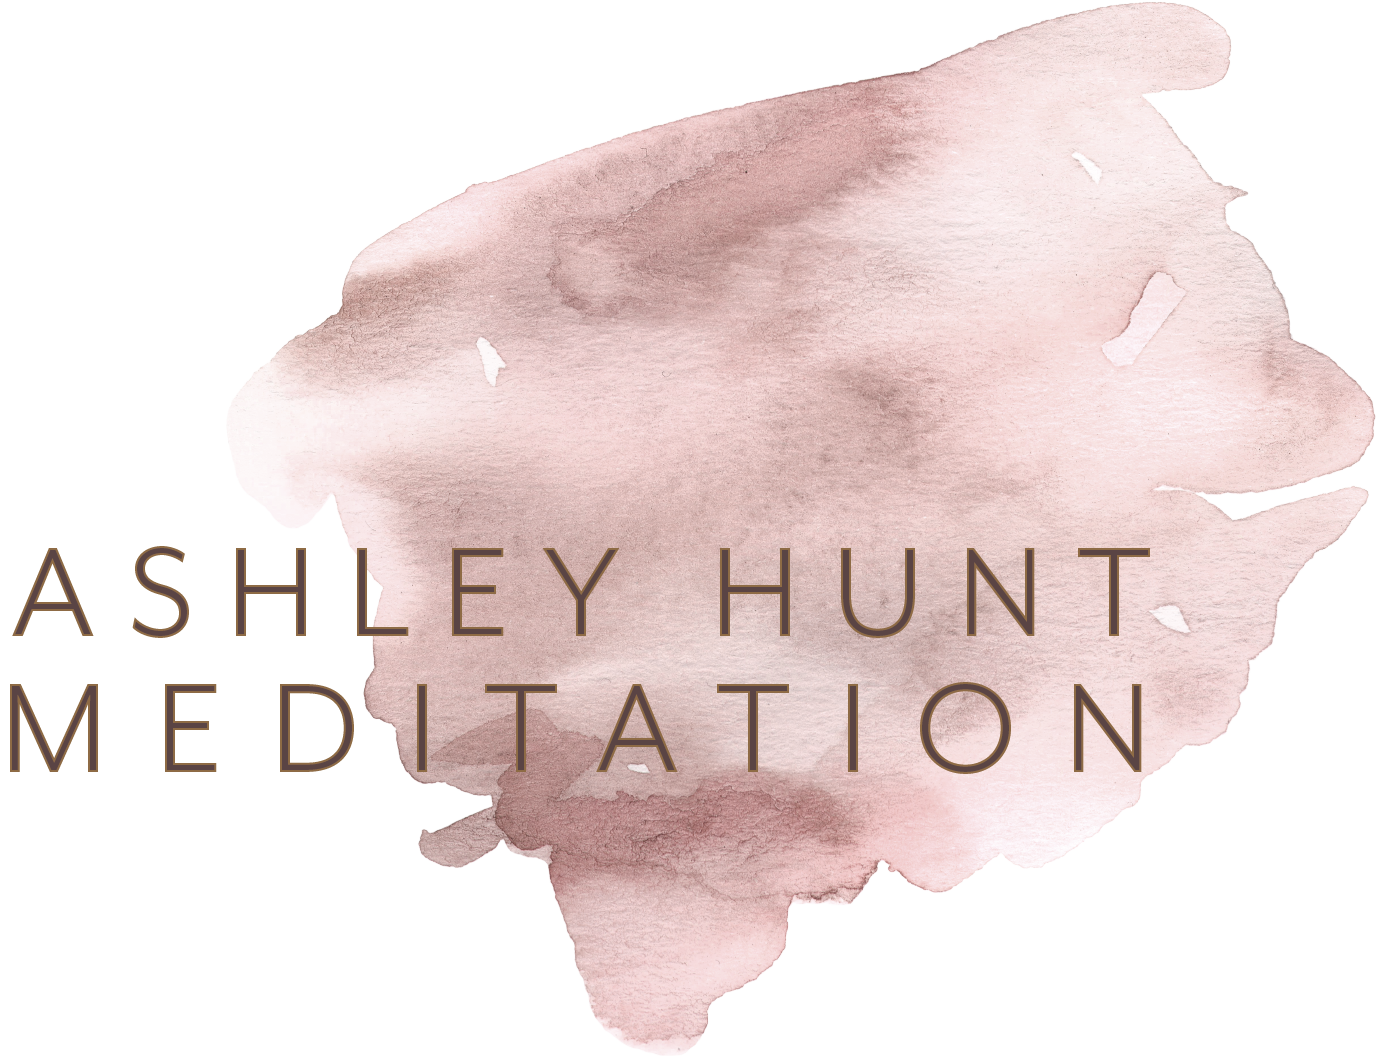 Ashley Hunt Meditation